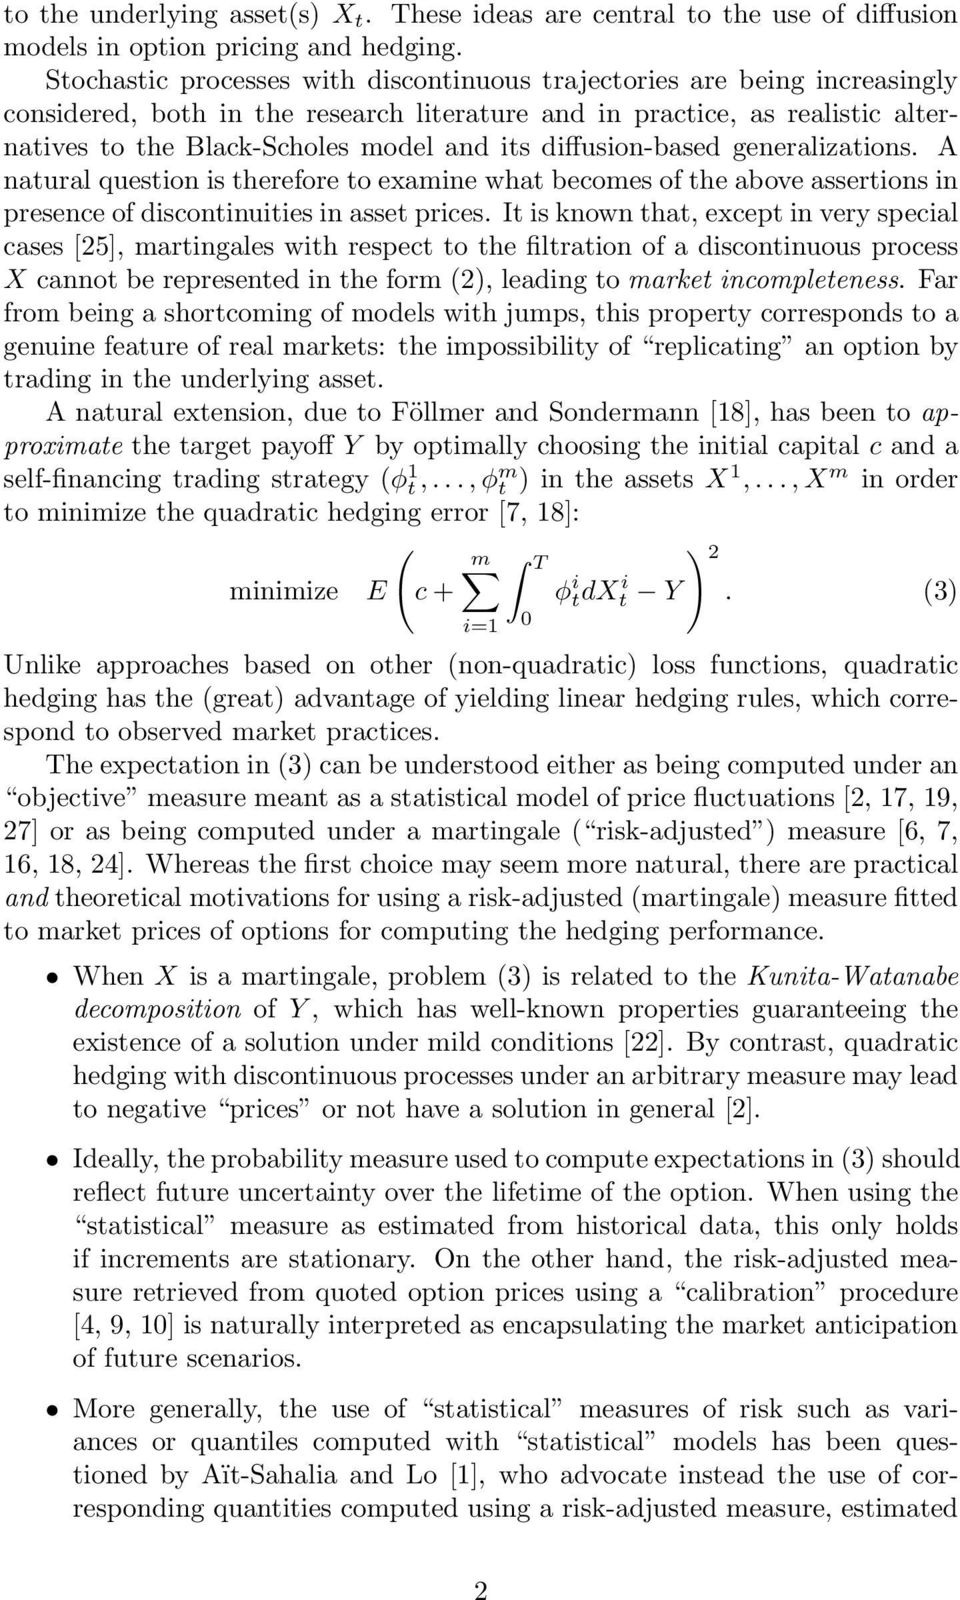 diffusion-based generalizations. A natural question is therefore to examine what becomes of the above assertions in presence of discontinuities in asset prices.